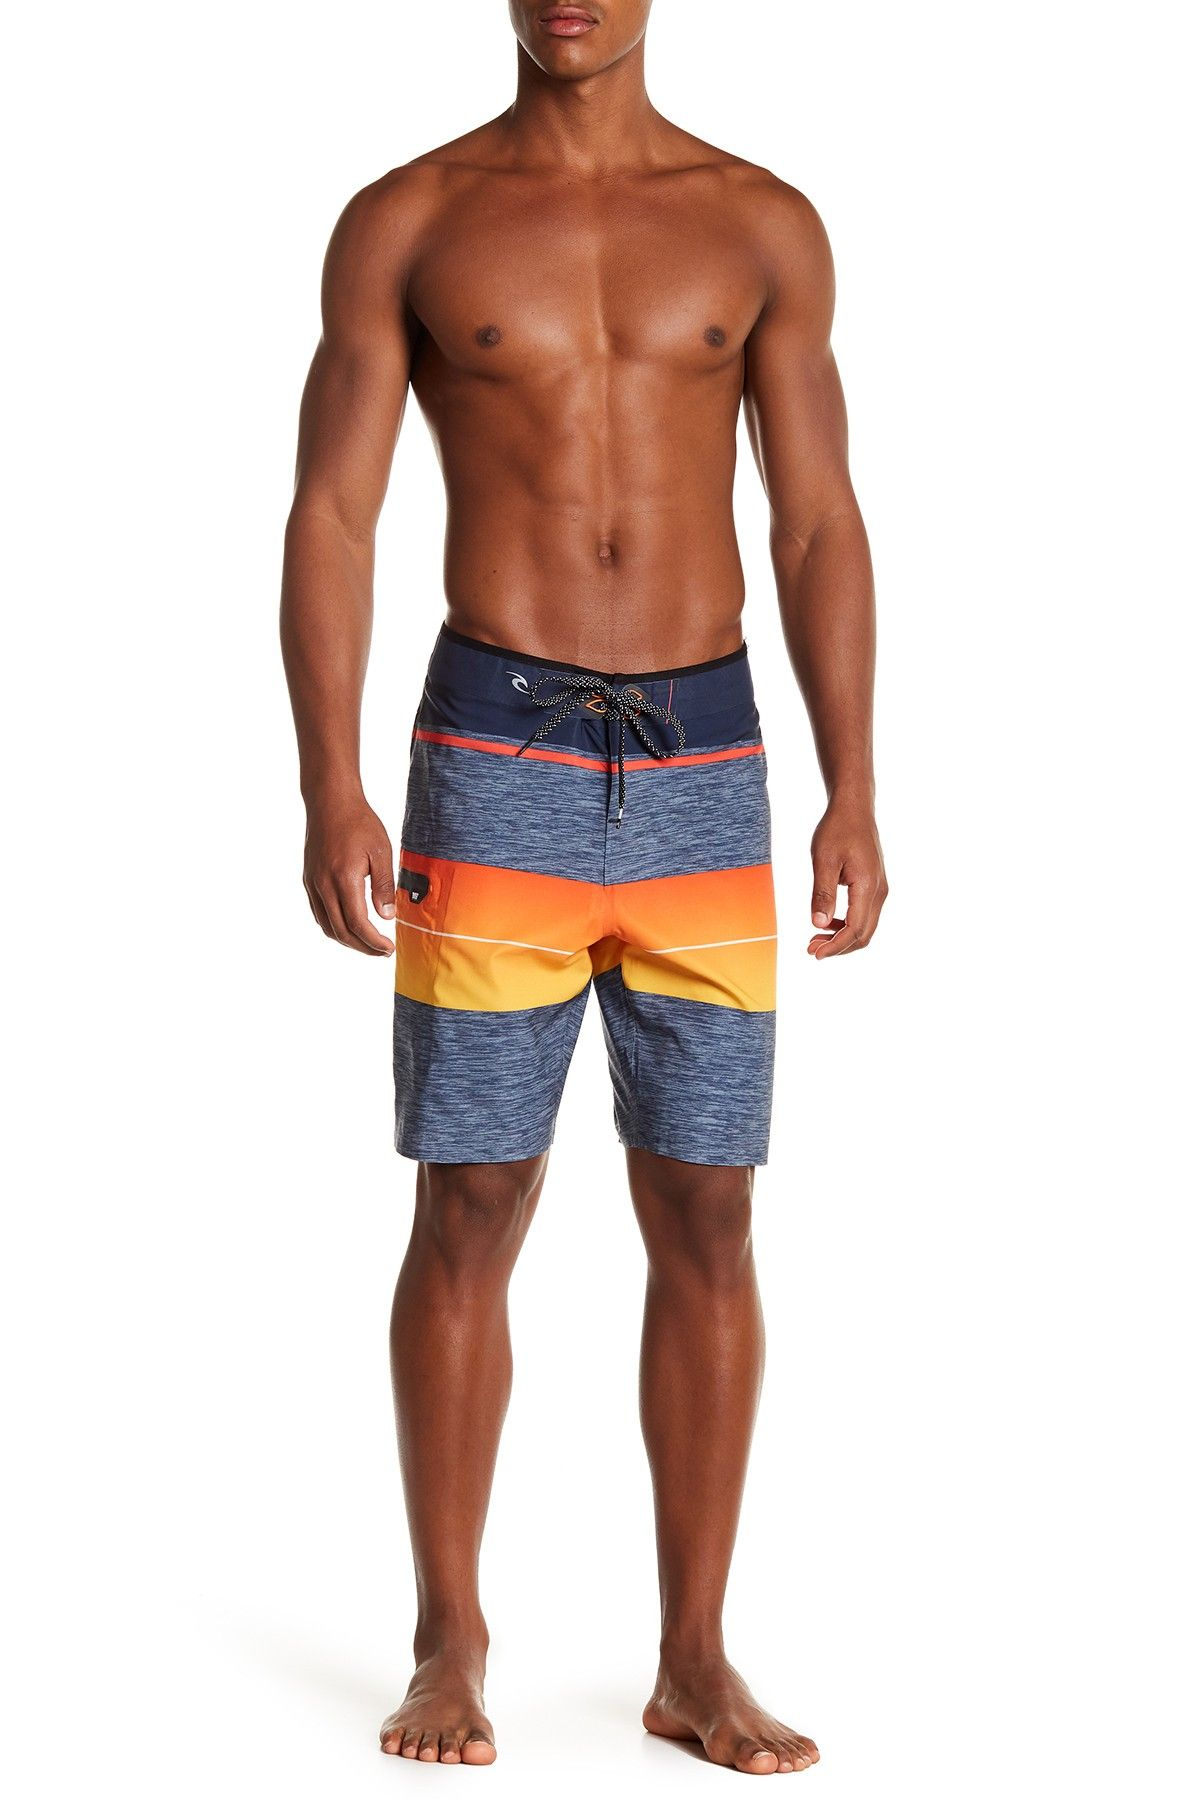 173559e6c6cc5e Mirage Eclipse Ultimate Board Shorts by Rip Curl on  HauteLook